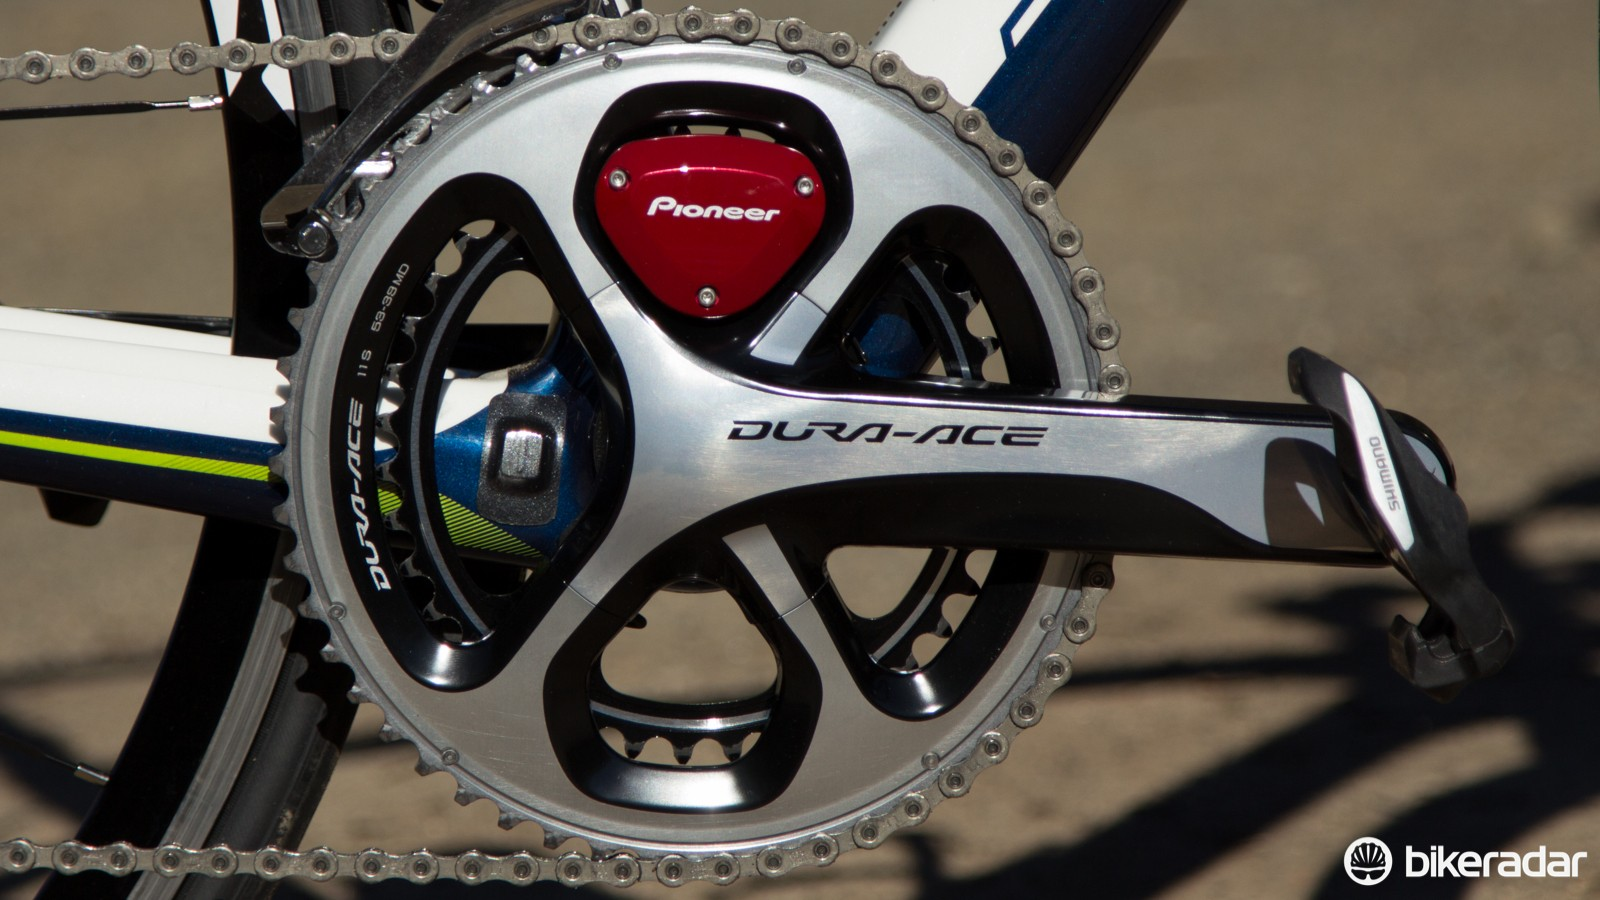 The Pioneer Power Meter Gen-2, available for Shimano Dura-Ace 9000 and Ultegra 6800 only at the moment